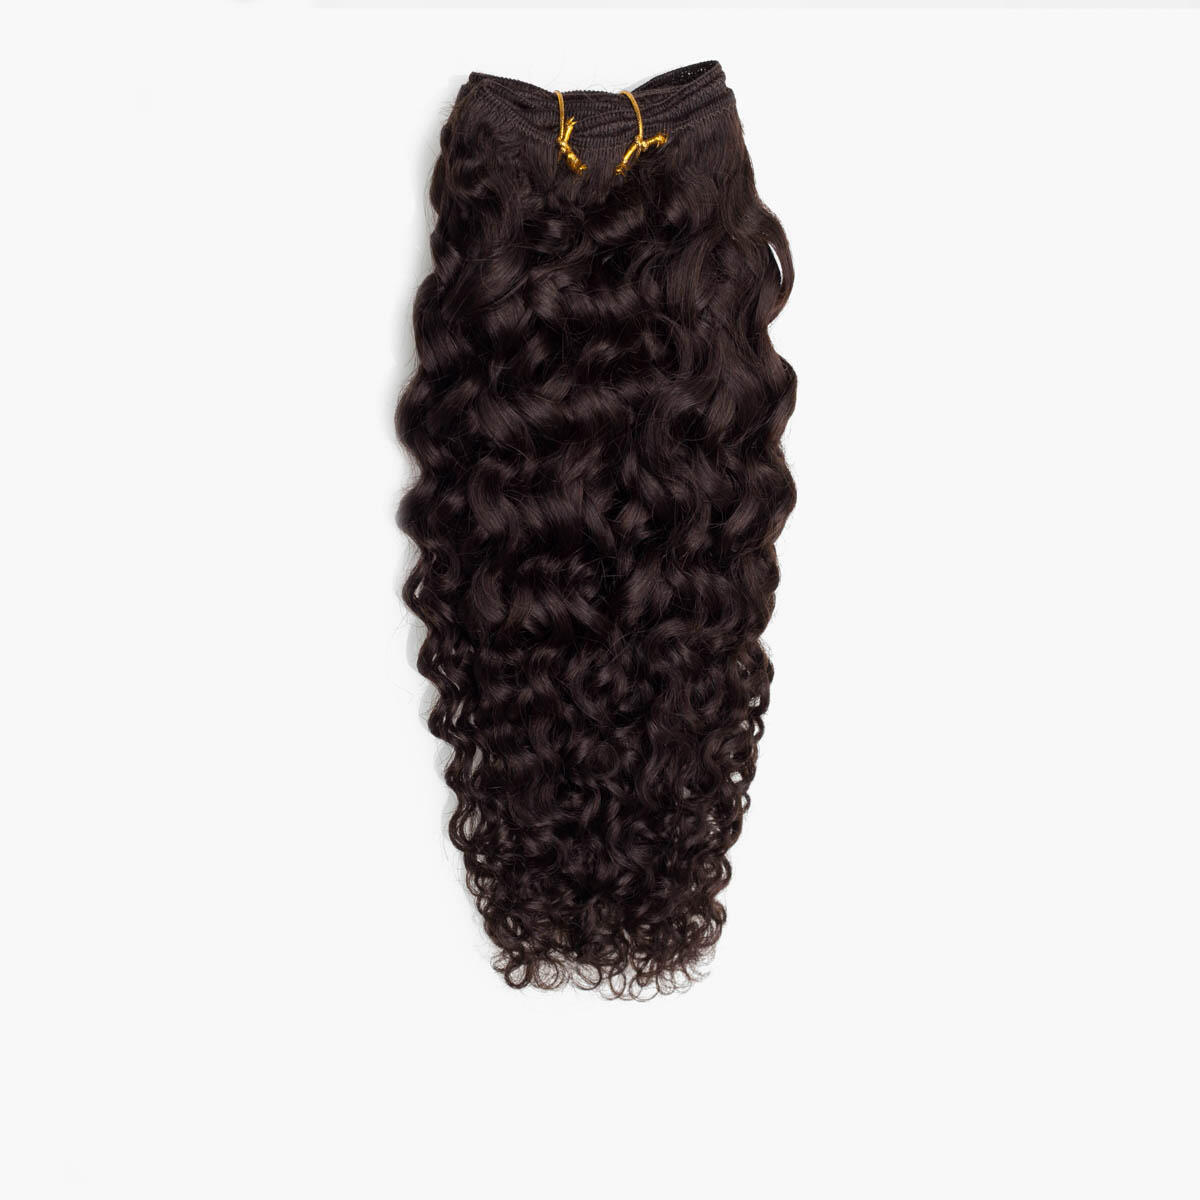 Haartresse Curly Curls 2.3 Chocolate Brown 35 cm